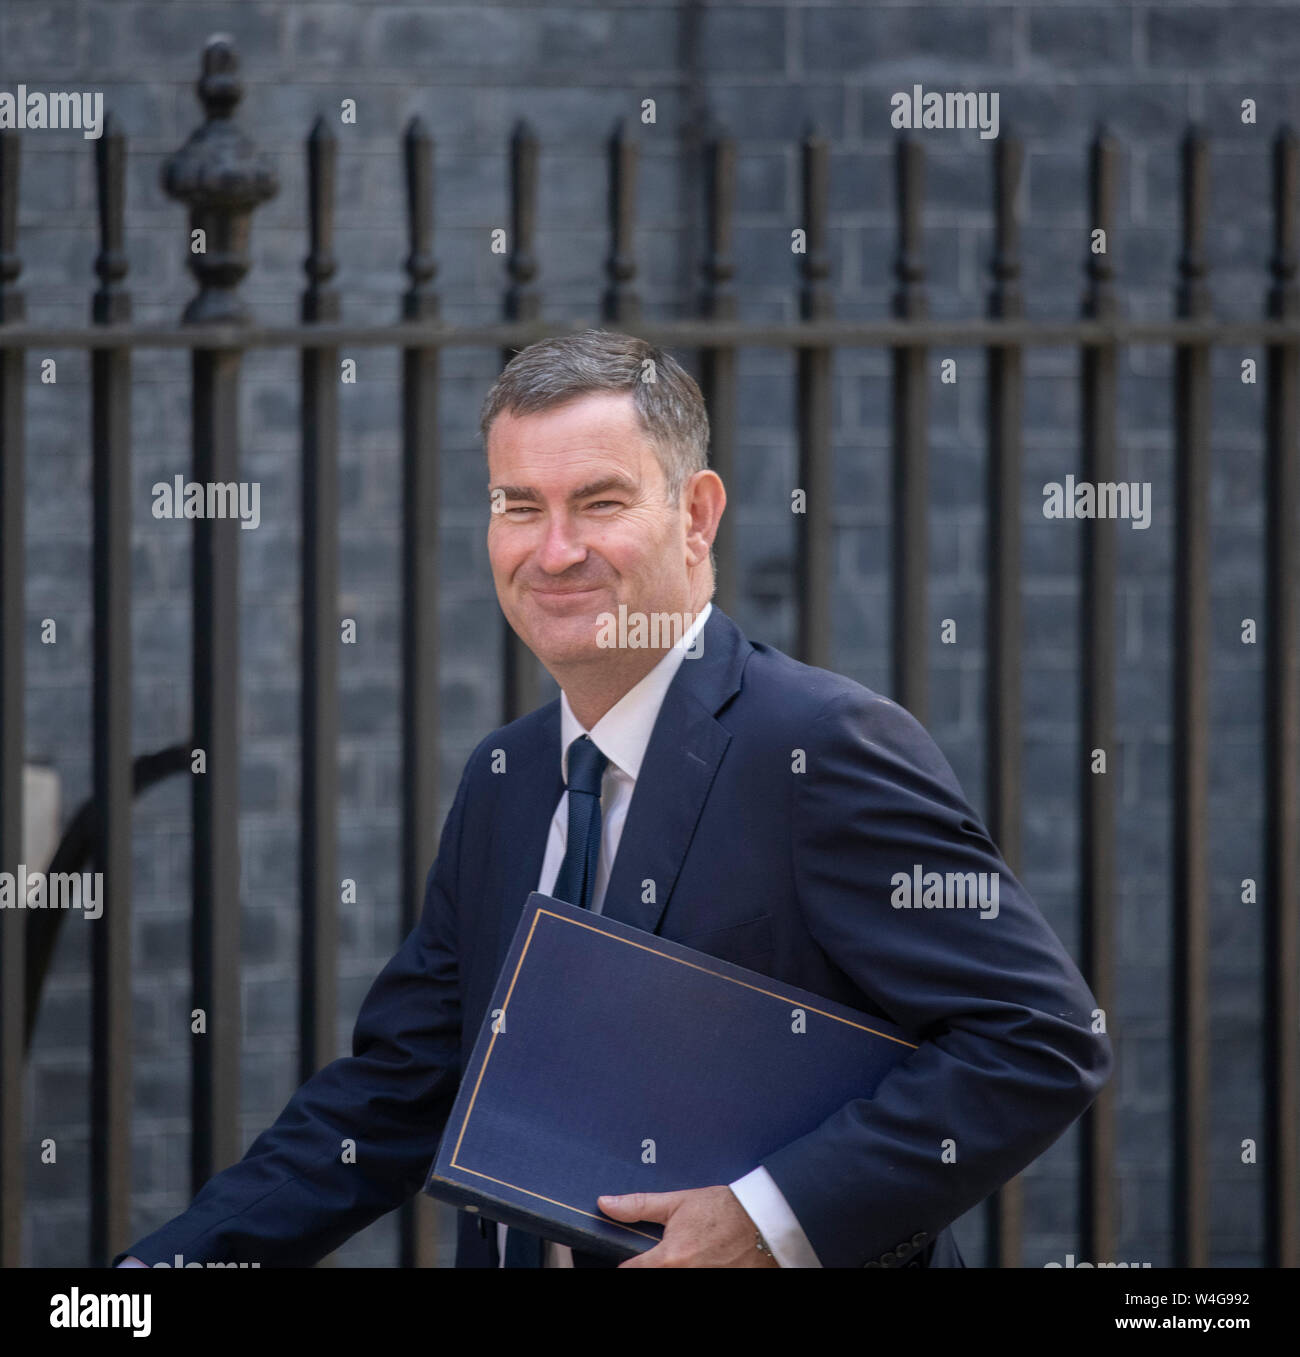 Downing Street, London, UK. 23rd July 2019. David Gauke, Secretary of State for Justice, arrive in Downing Street for final cabinet meeting before Boris Johnson is announced as new PM. Credit: Malcolm Park/Alamy Live News. Stock Photo